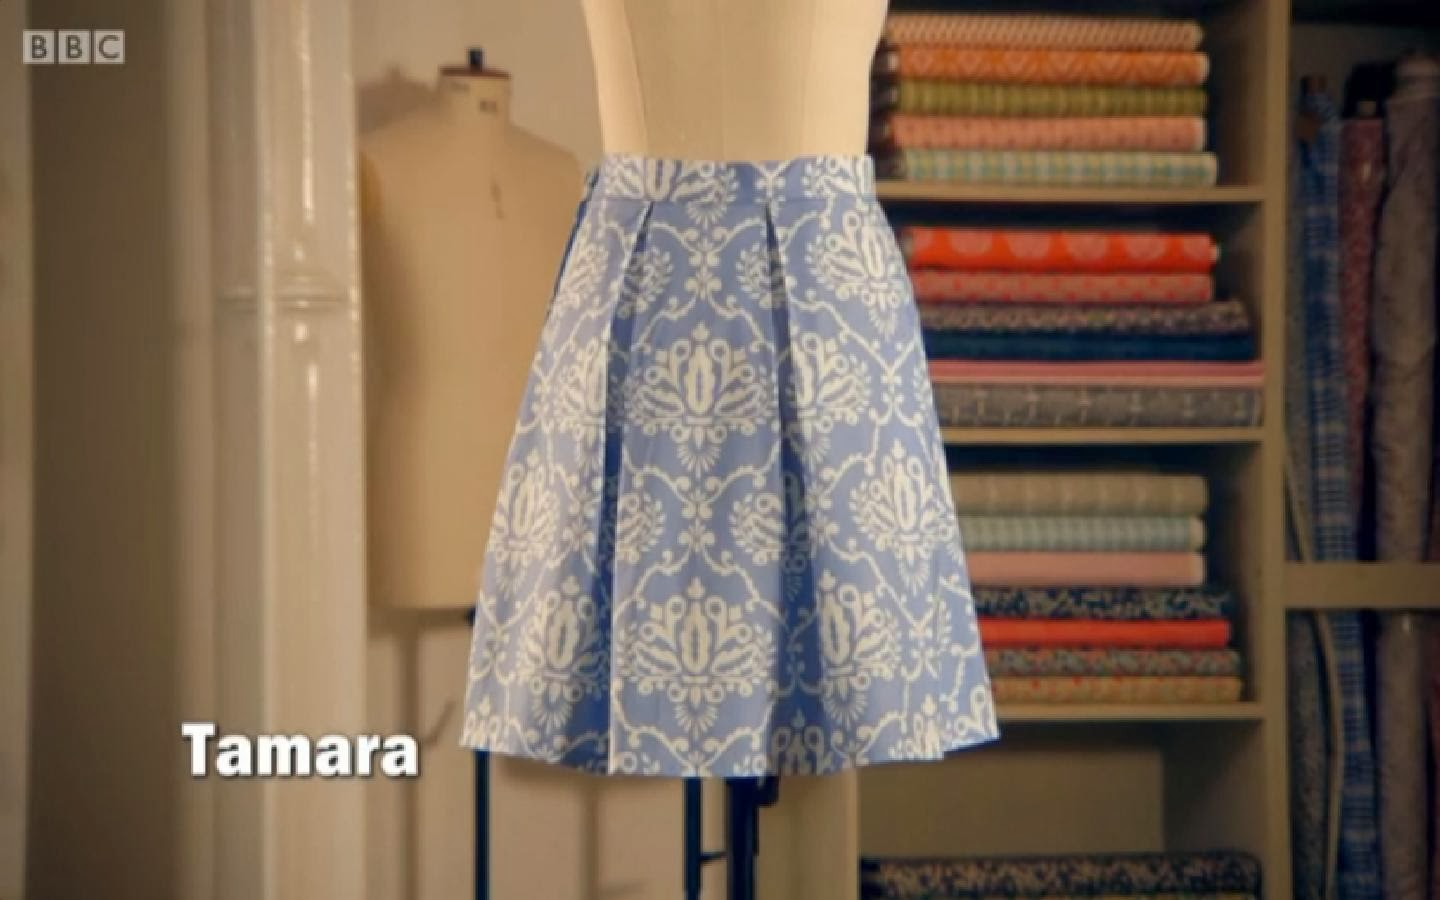 A-Line Skirt hack: Make a Pleated Skirt! | Laura After Midnight